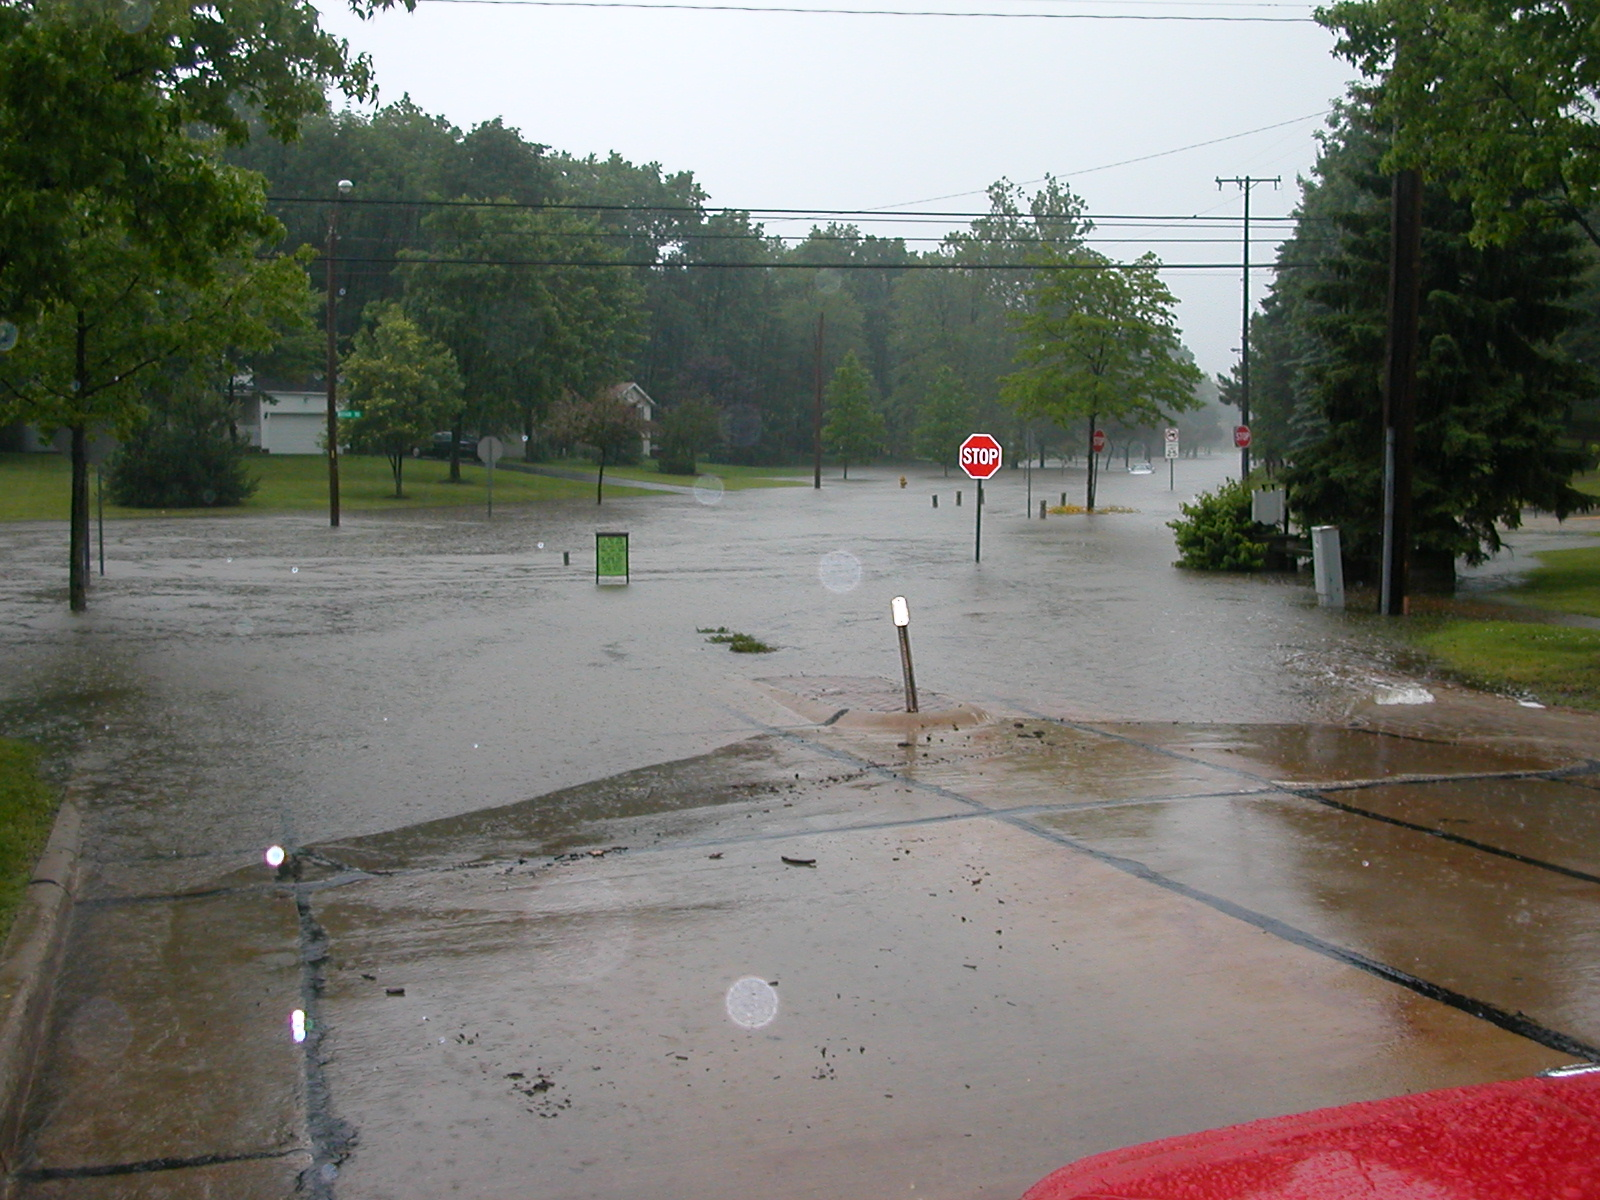 Flooded intersection with standing water